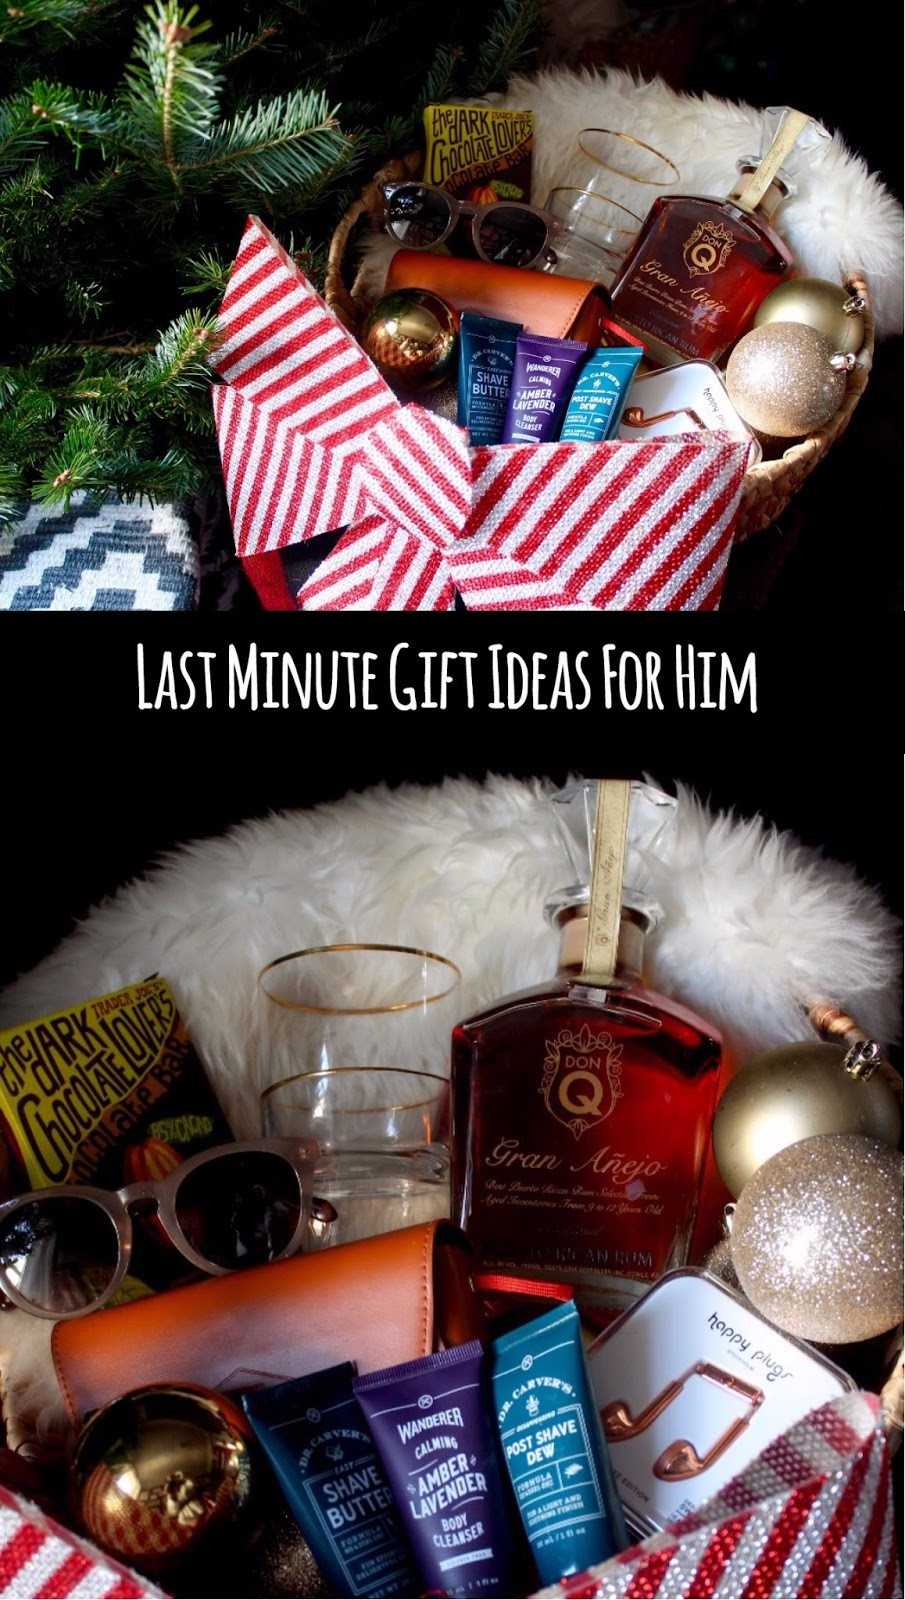 Best ideas about Last Minute Gift Ideas For Him . Save or Pin Last Minute Gift Ideas for Him Now.